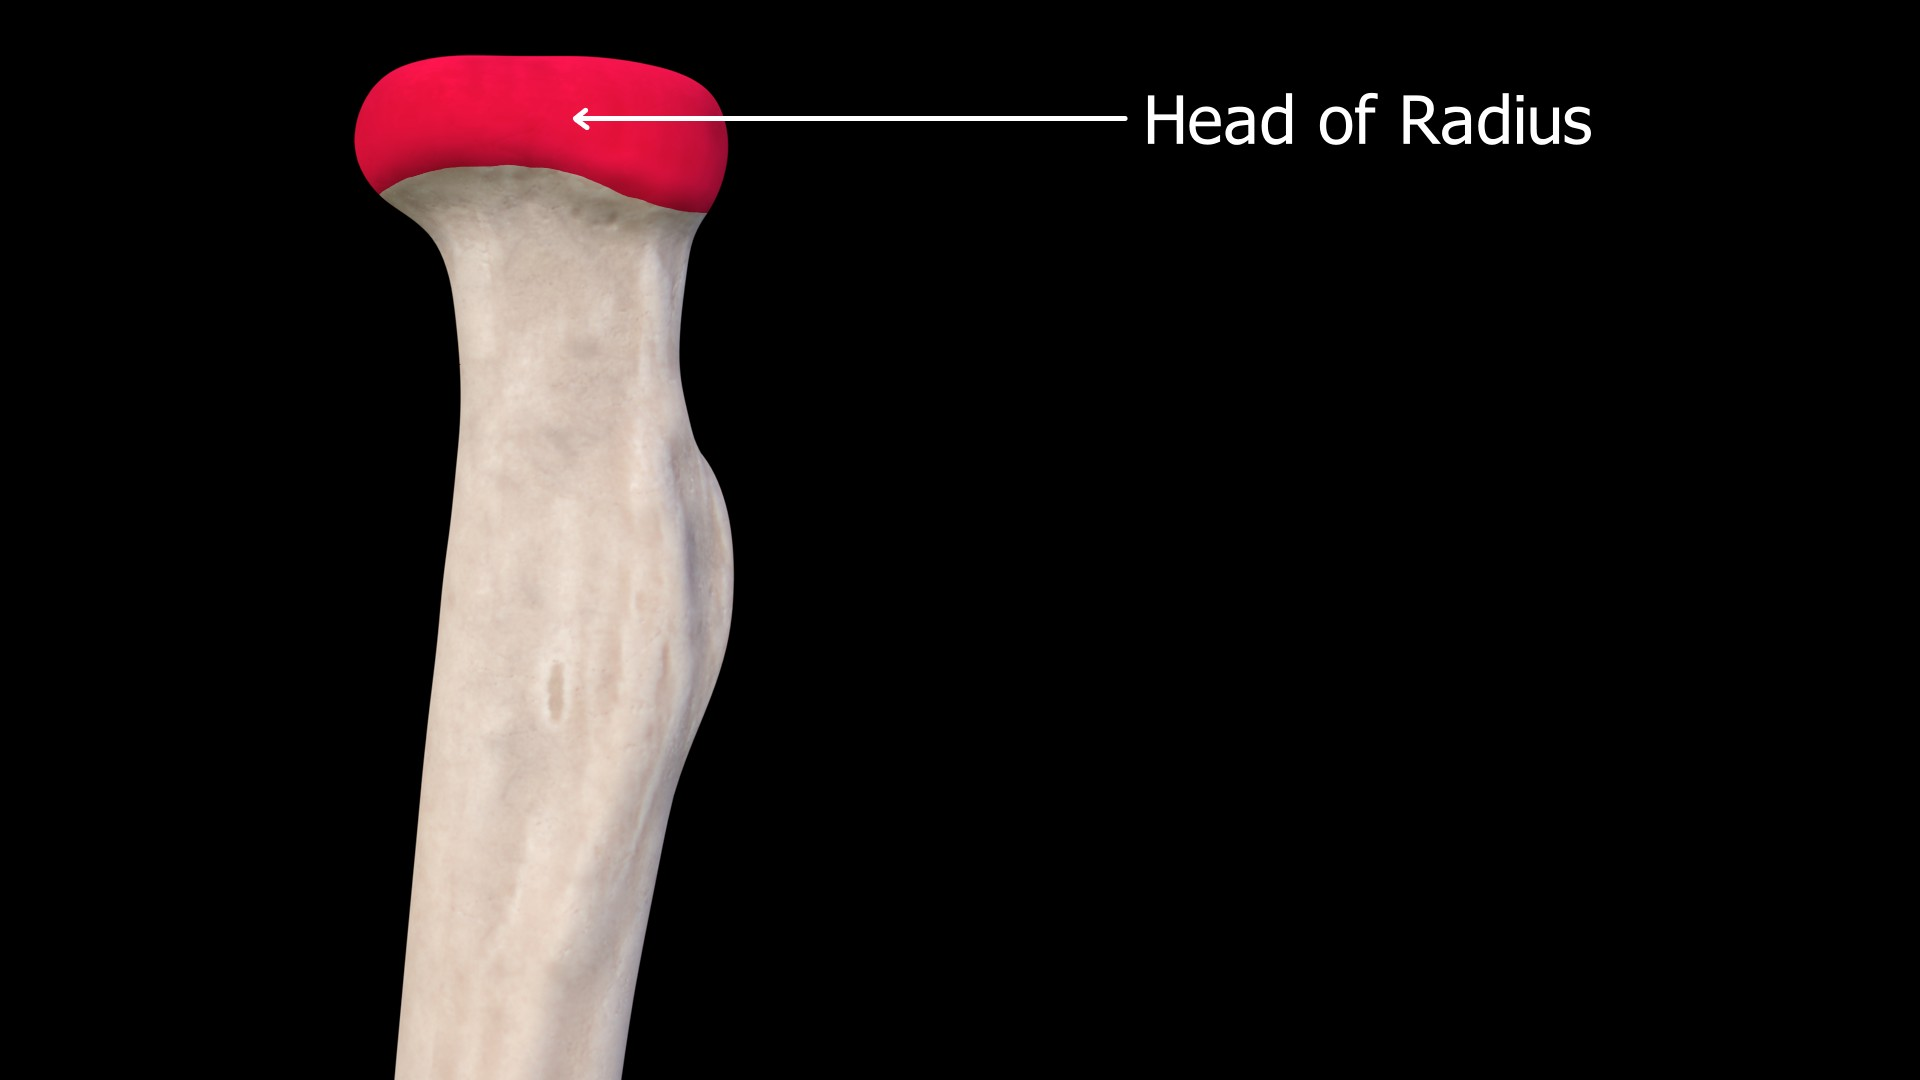 Image showing Head of the Radius